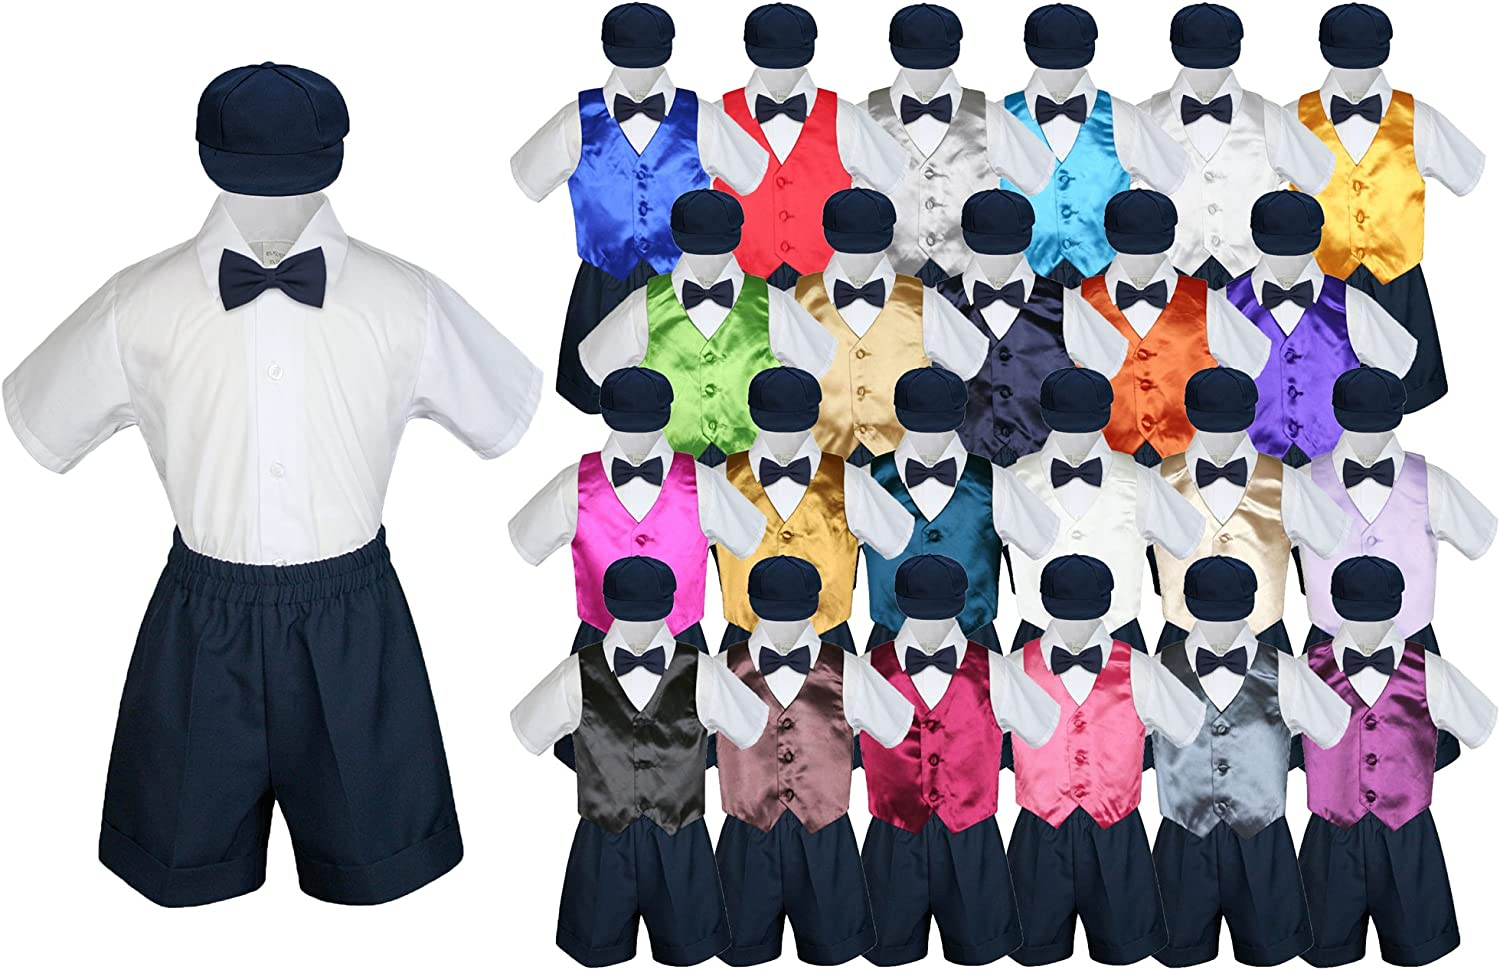 LEADERTUX 4pc Baby Toddler Kid Boy Wedding Suit Navy Pants Shirt Bow tie Hat Set Sm-4T